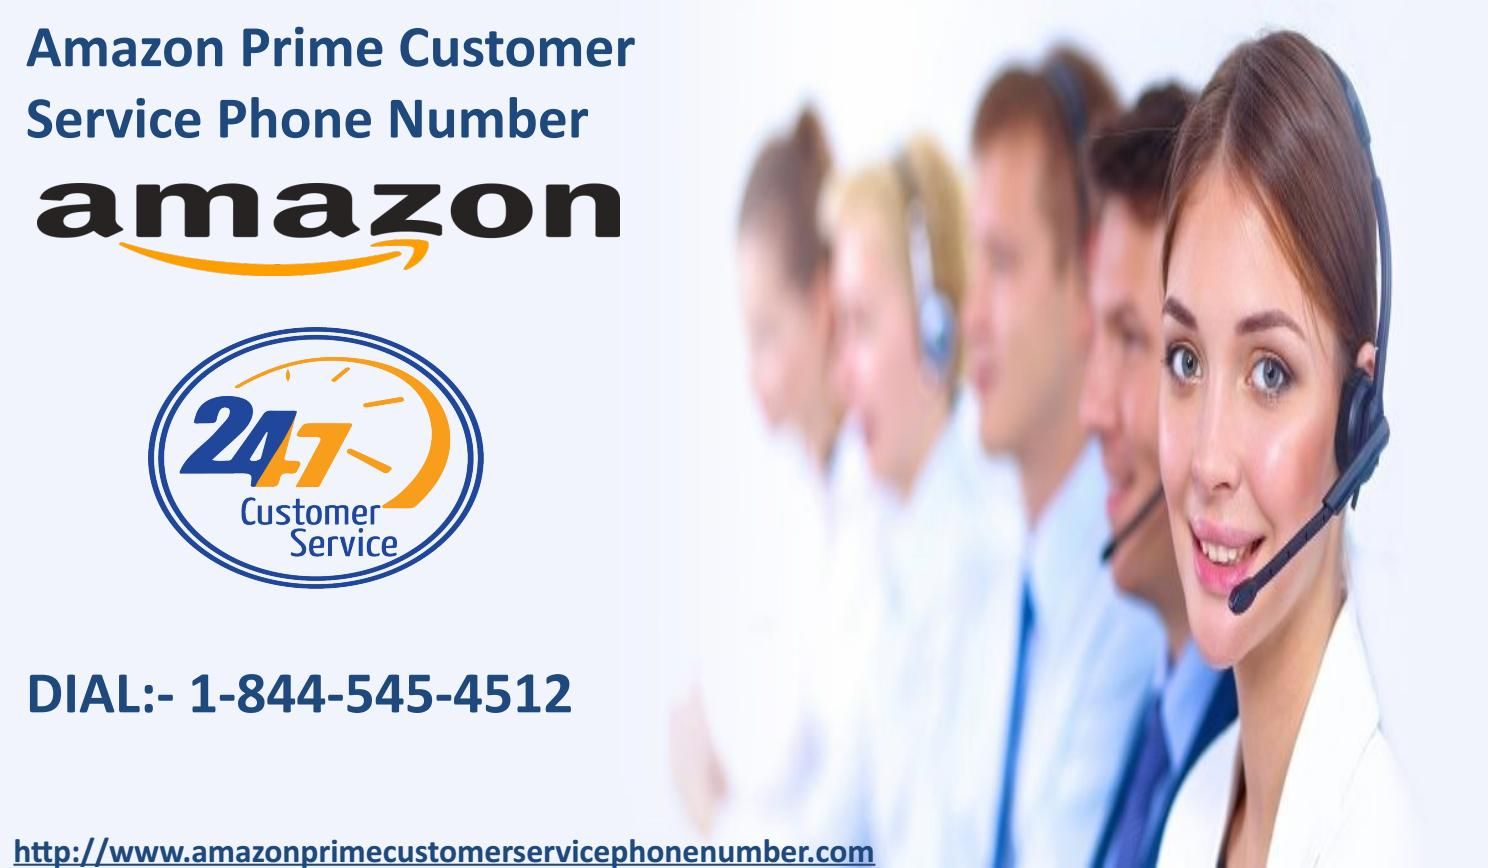 Boost Your Amazon Prime Customer Service Phone Number with